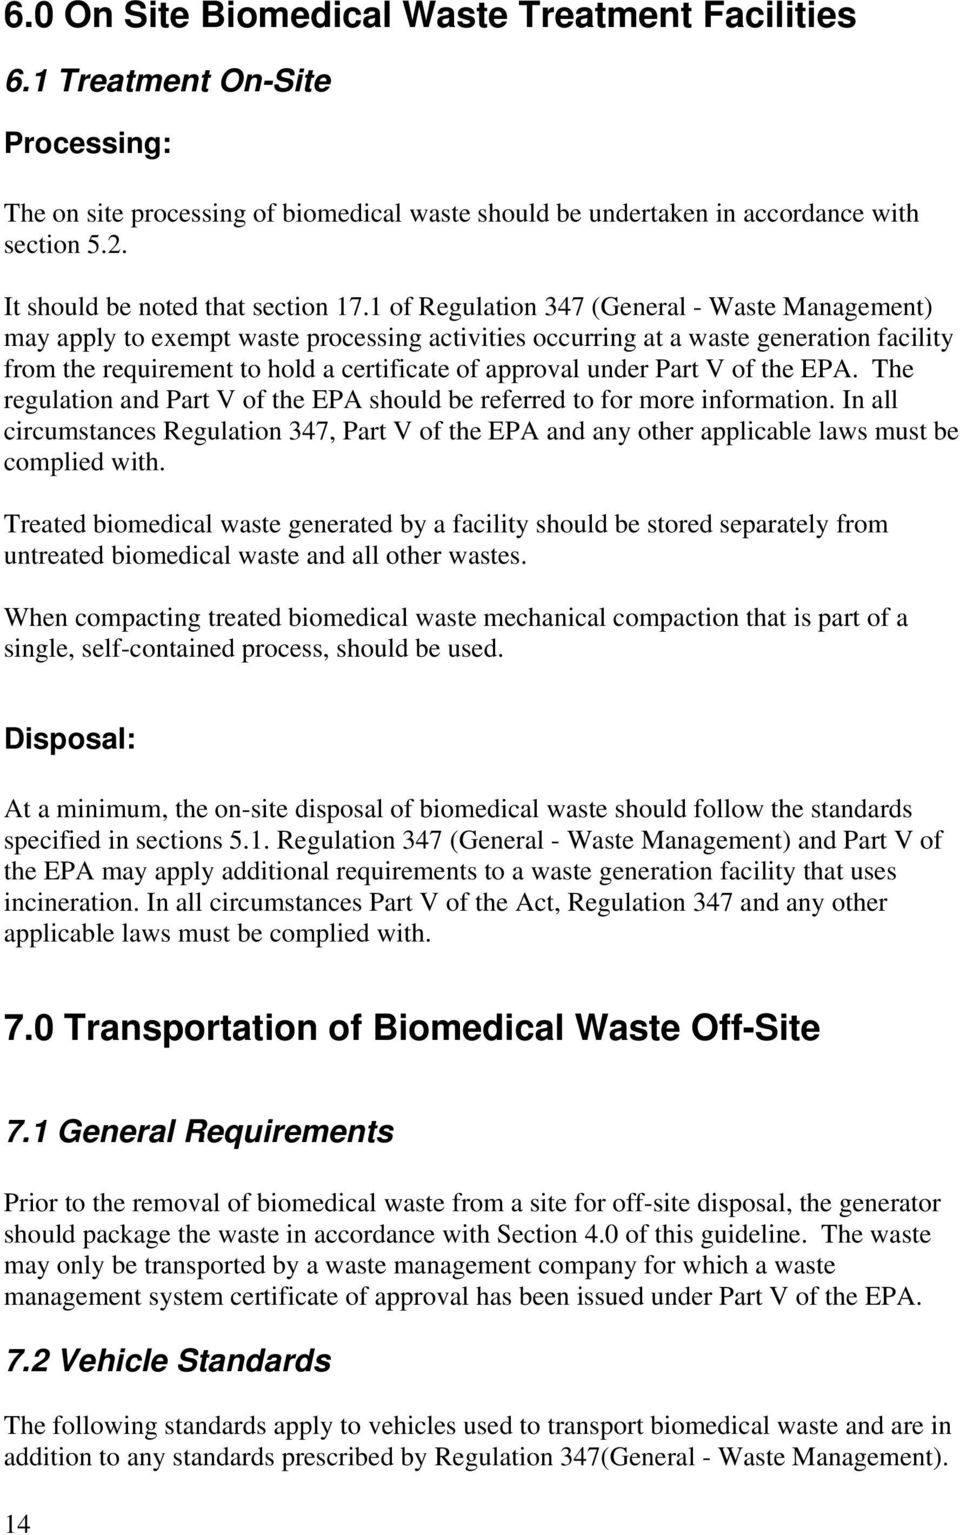 1 of Regulation 347 (General - Waste Management) may apply to exempt waste processing activities occurring at a waste generation facility from the requirement to hold a certificate of approval under